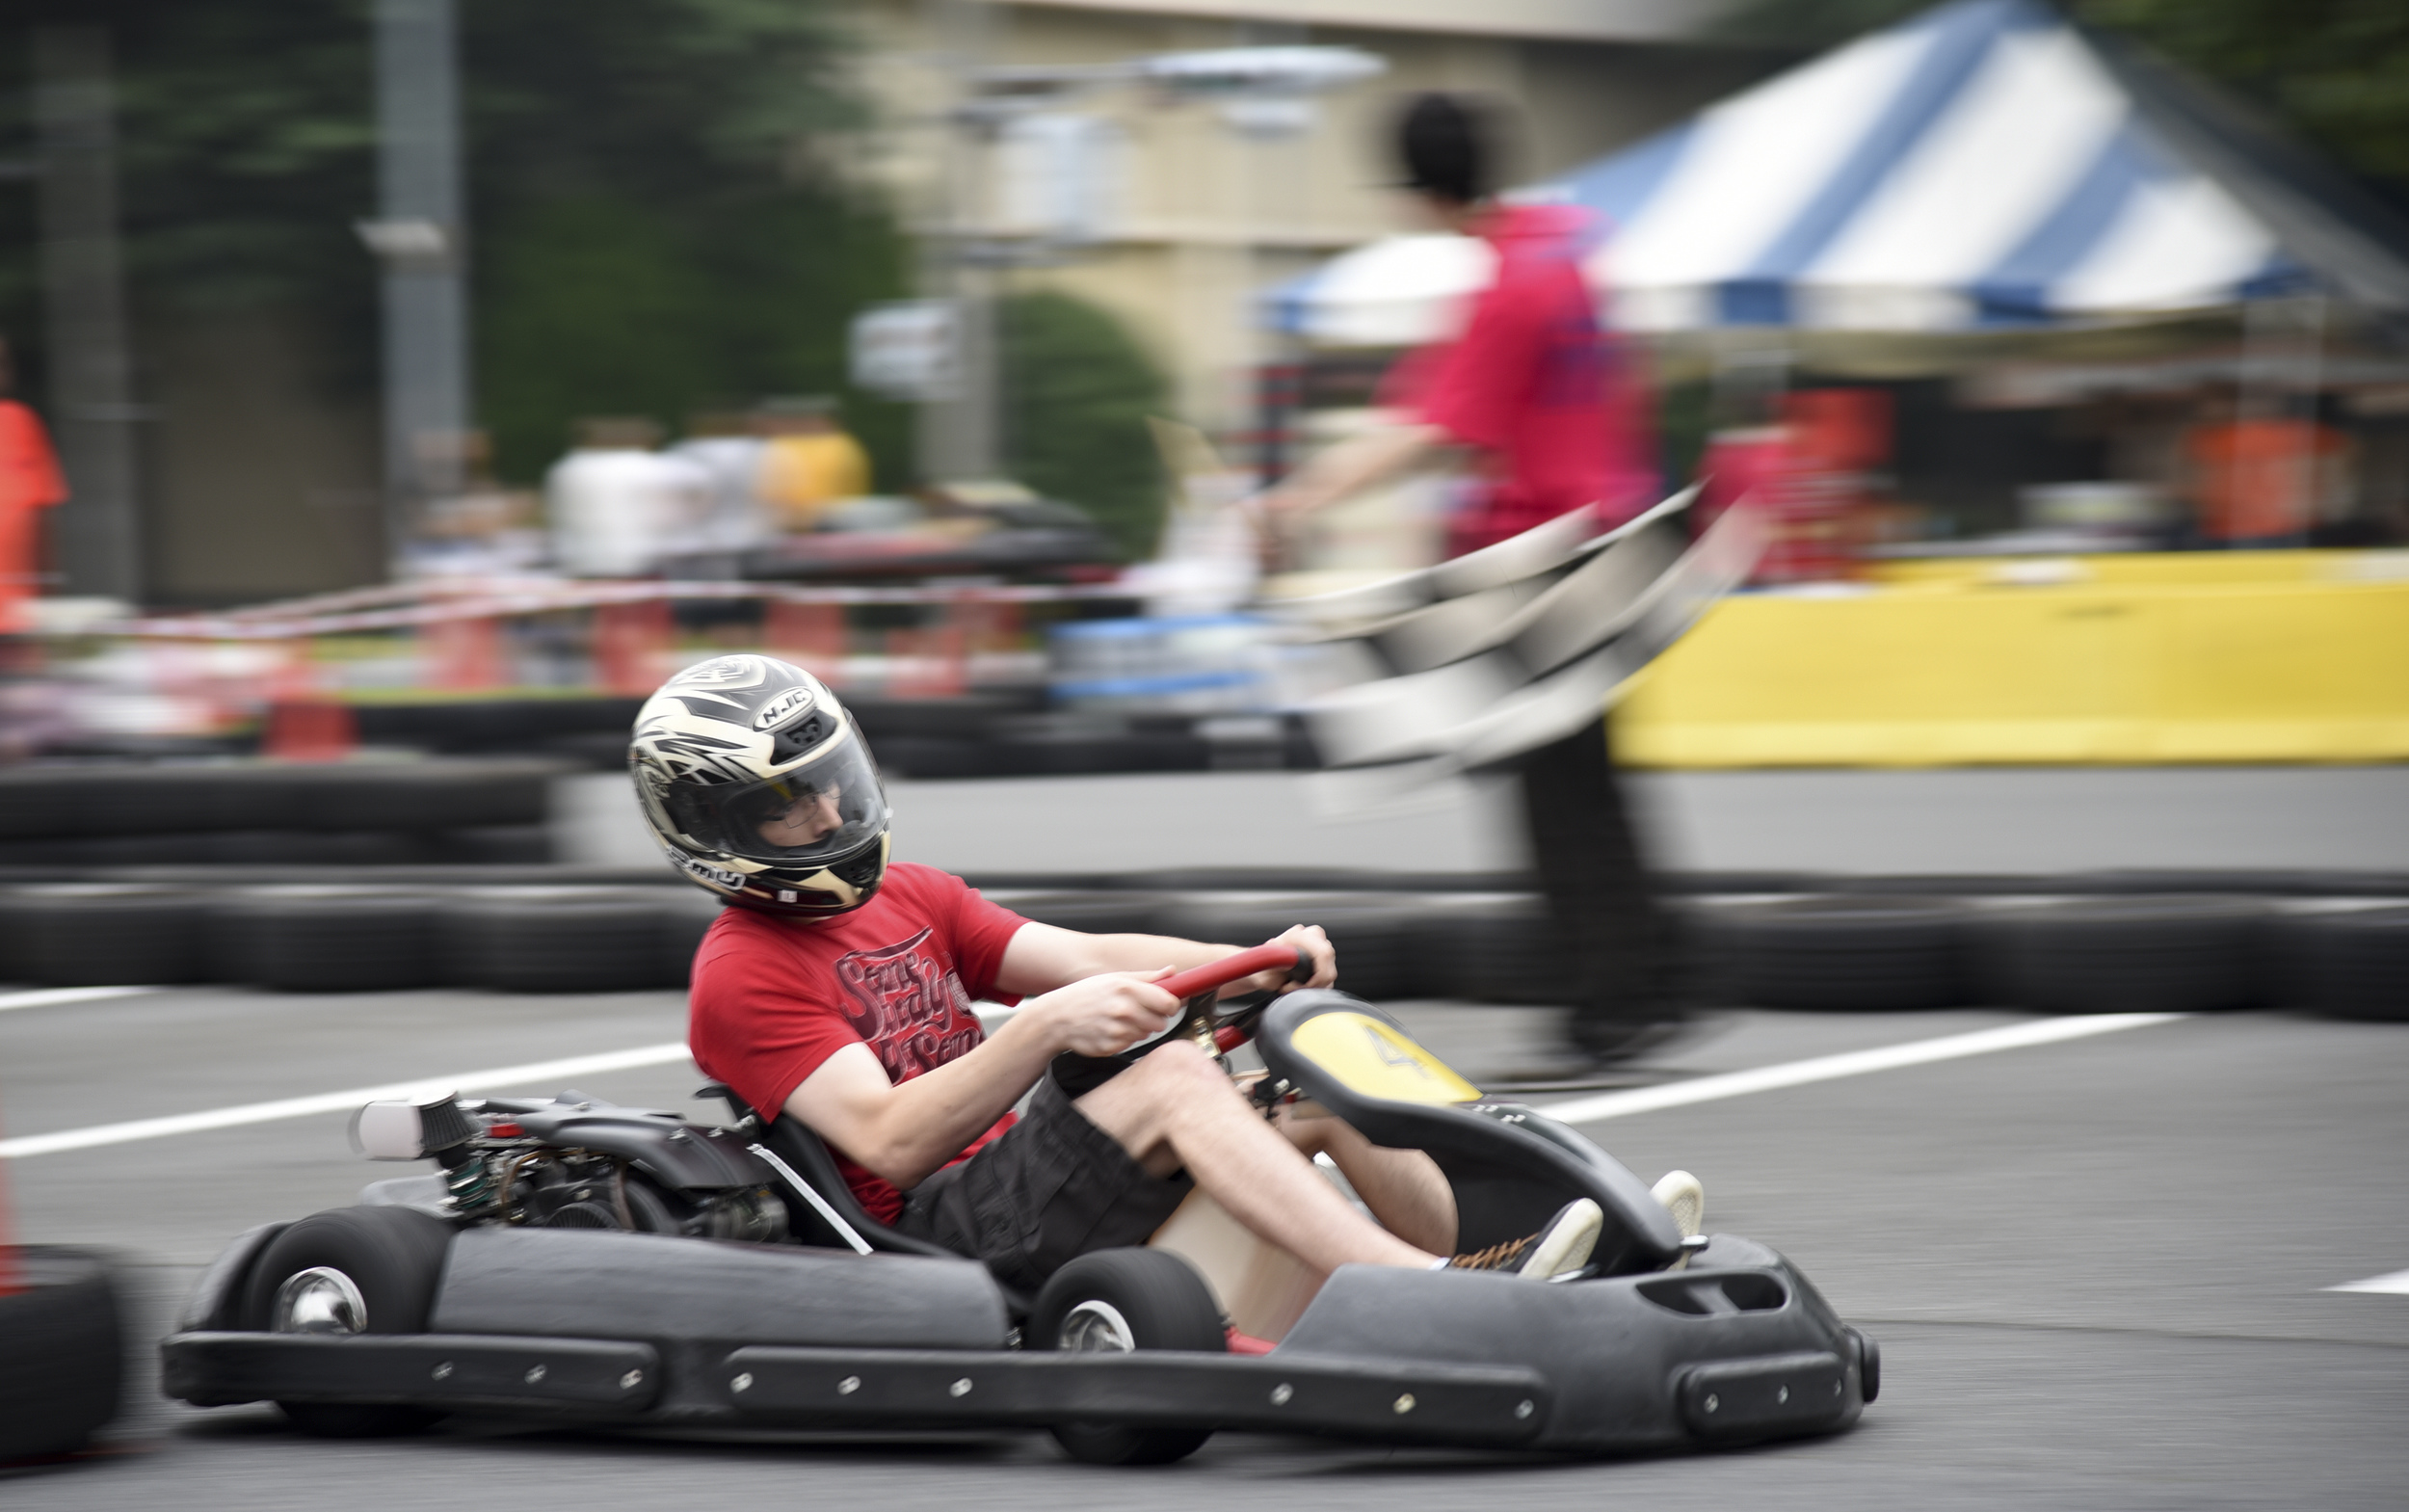 A member of Team Yokota races around the go-kart track during Celebrate America at Yokota Air Base, Japan, July 2, 2015. Some of the events during Celebrate America included live music, a petting zoo, Taiko drummers, dancers and a car show. (U.S. Air Force photo by Senior Airman Michael Washburn/Released)